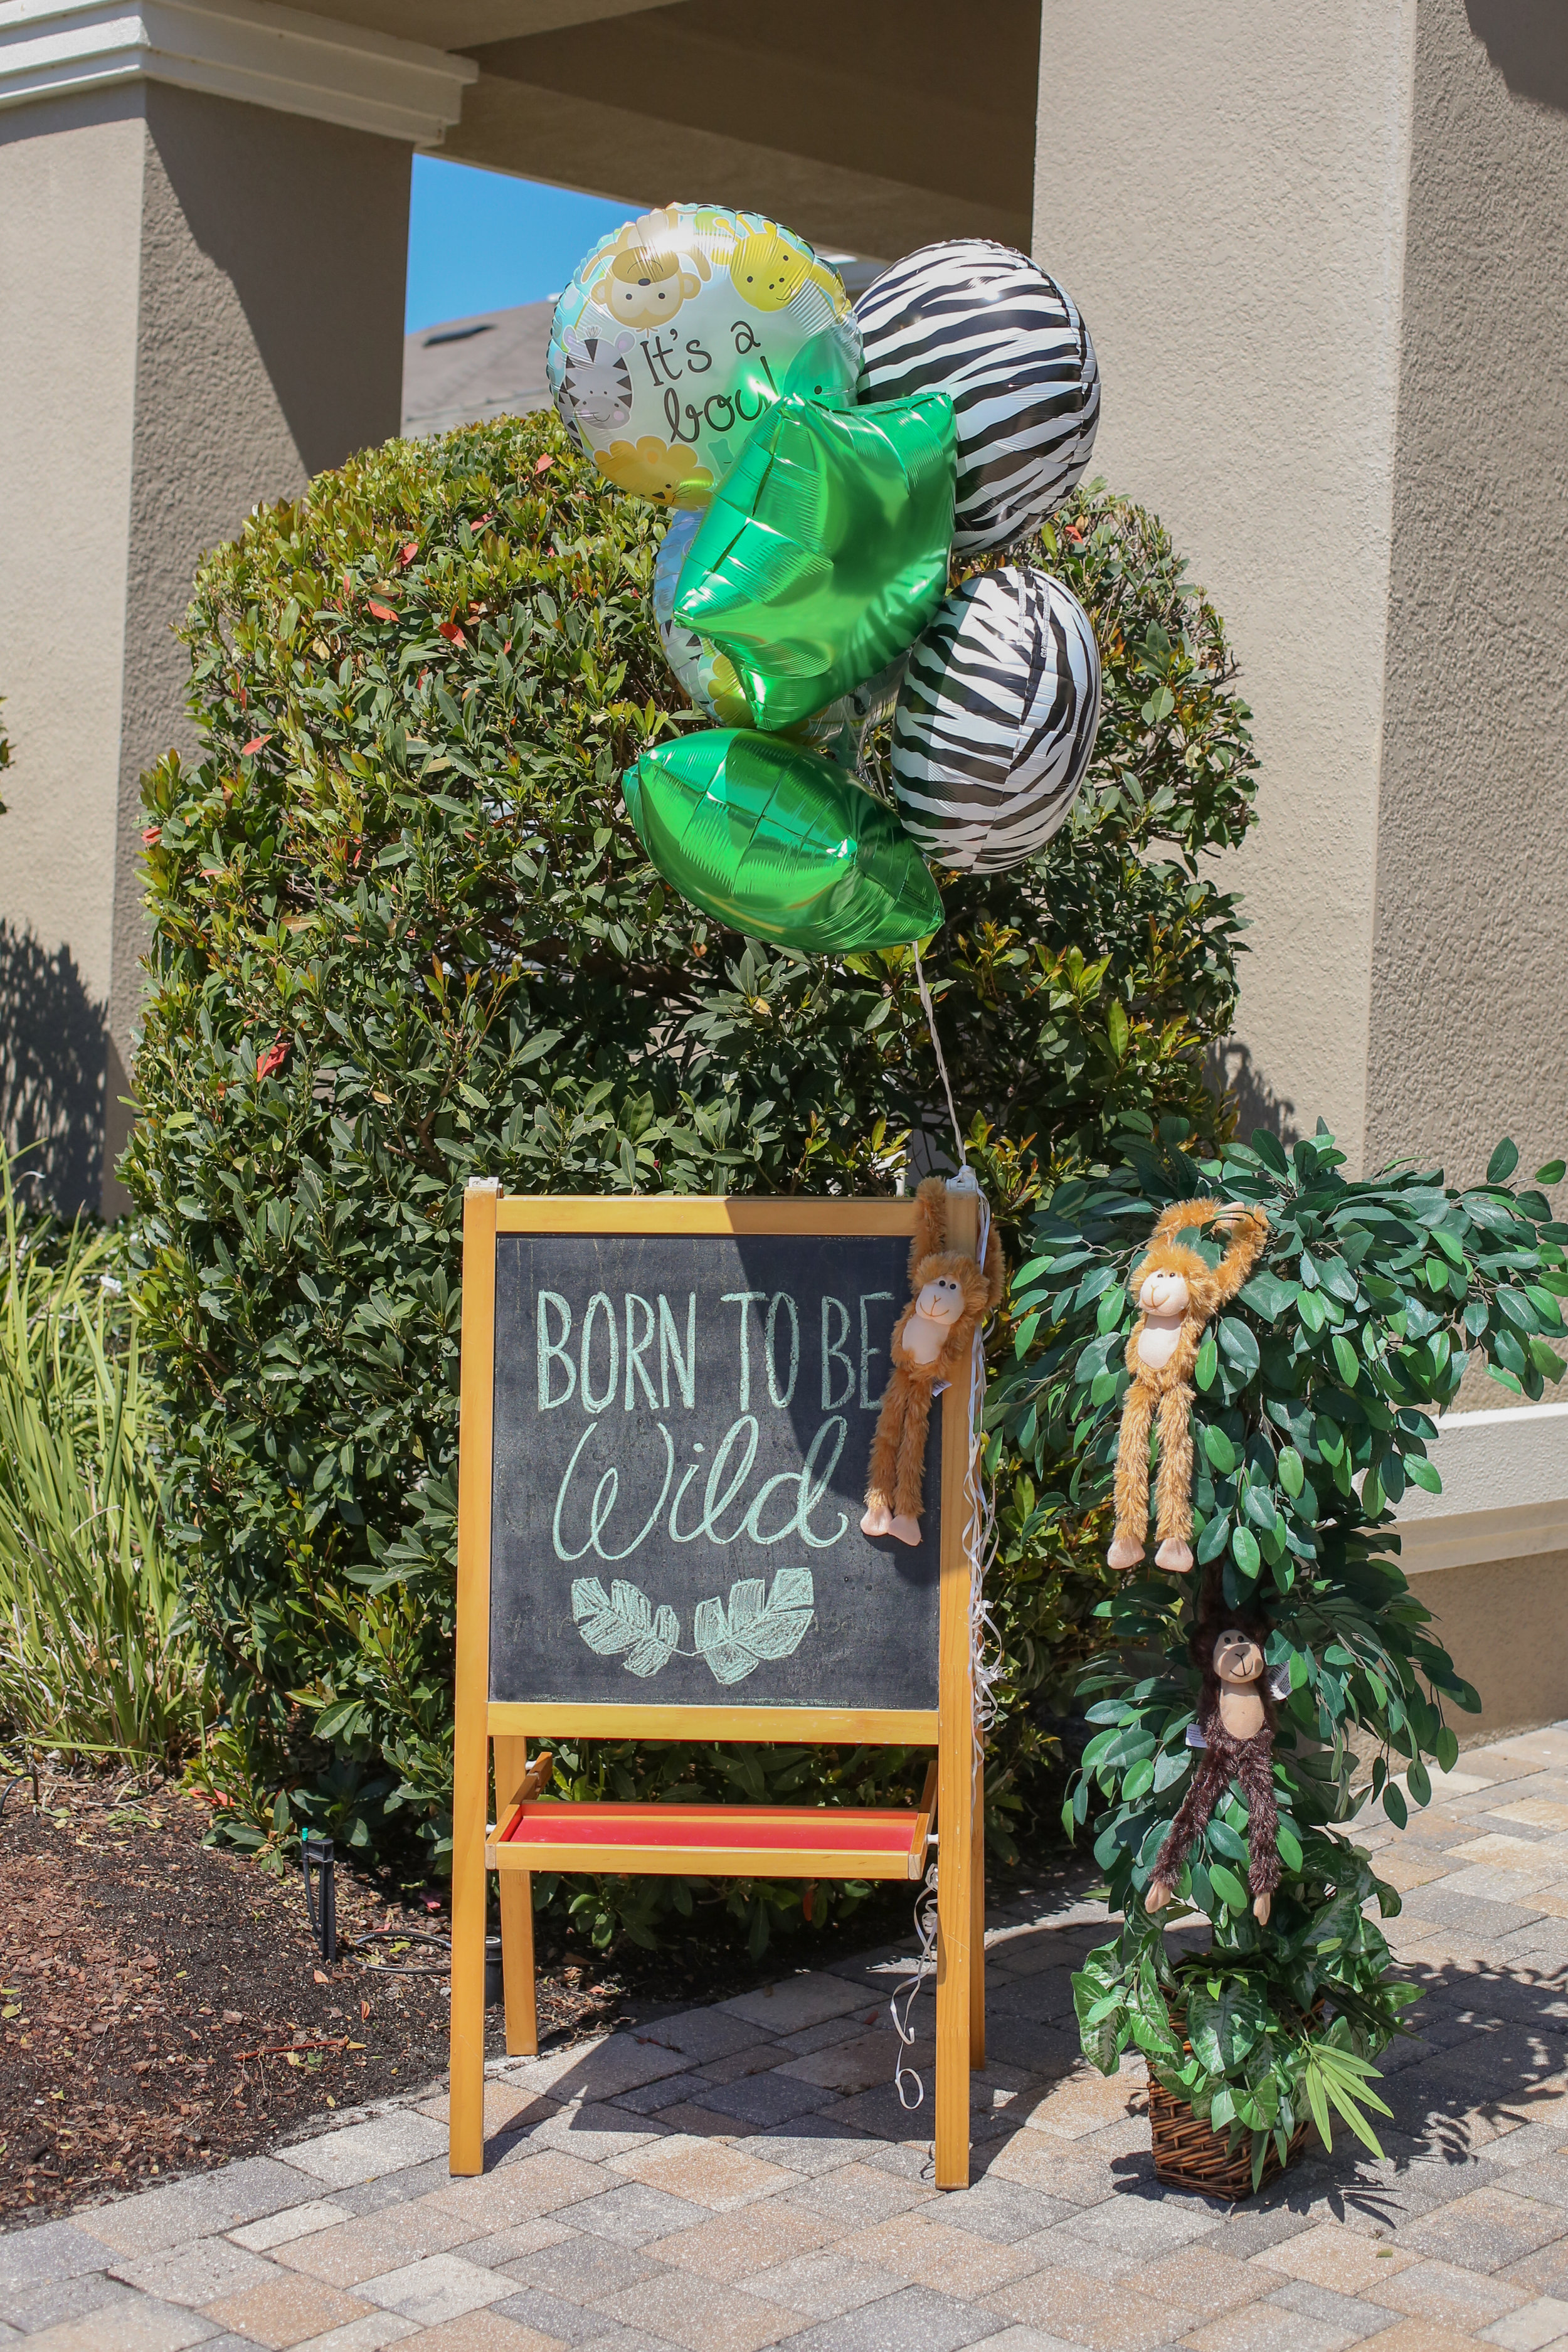 As guests arrived they were welcomed by a cute chalkboard sign and balloons adorned with monkeys!